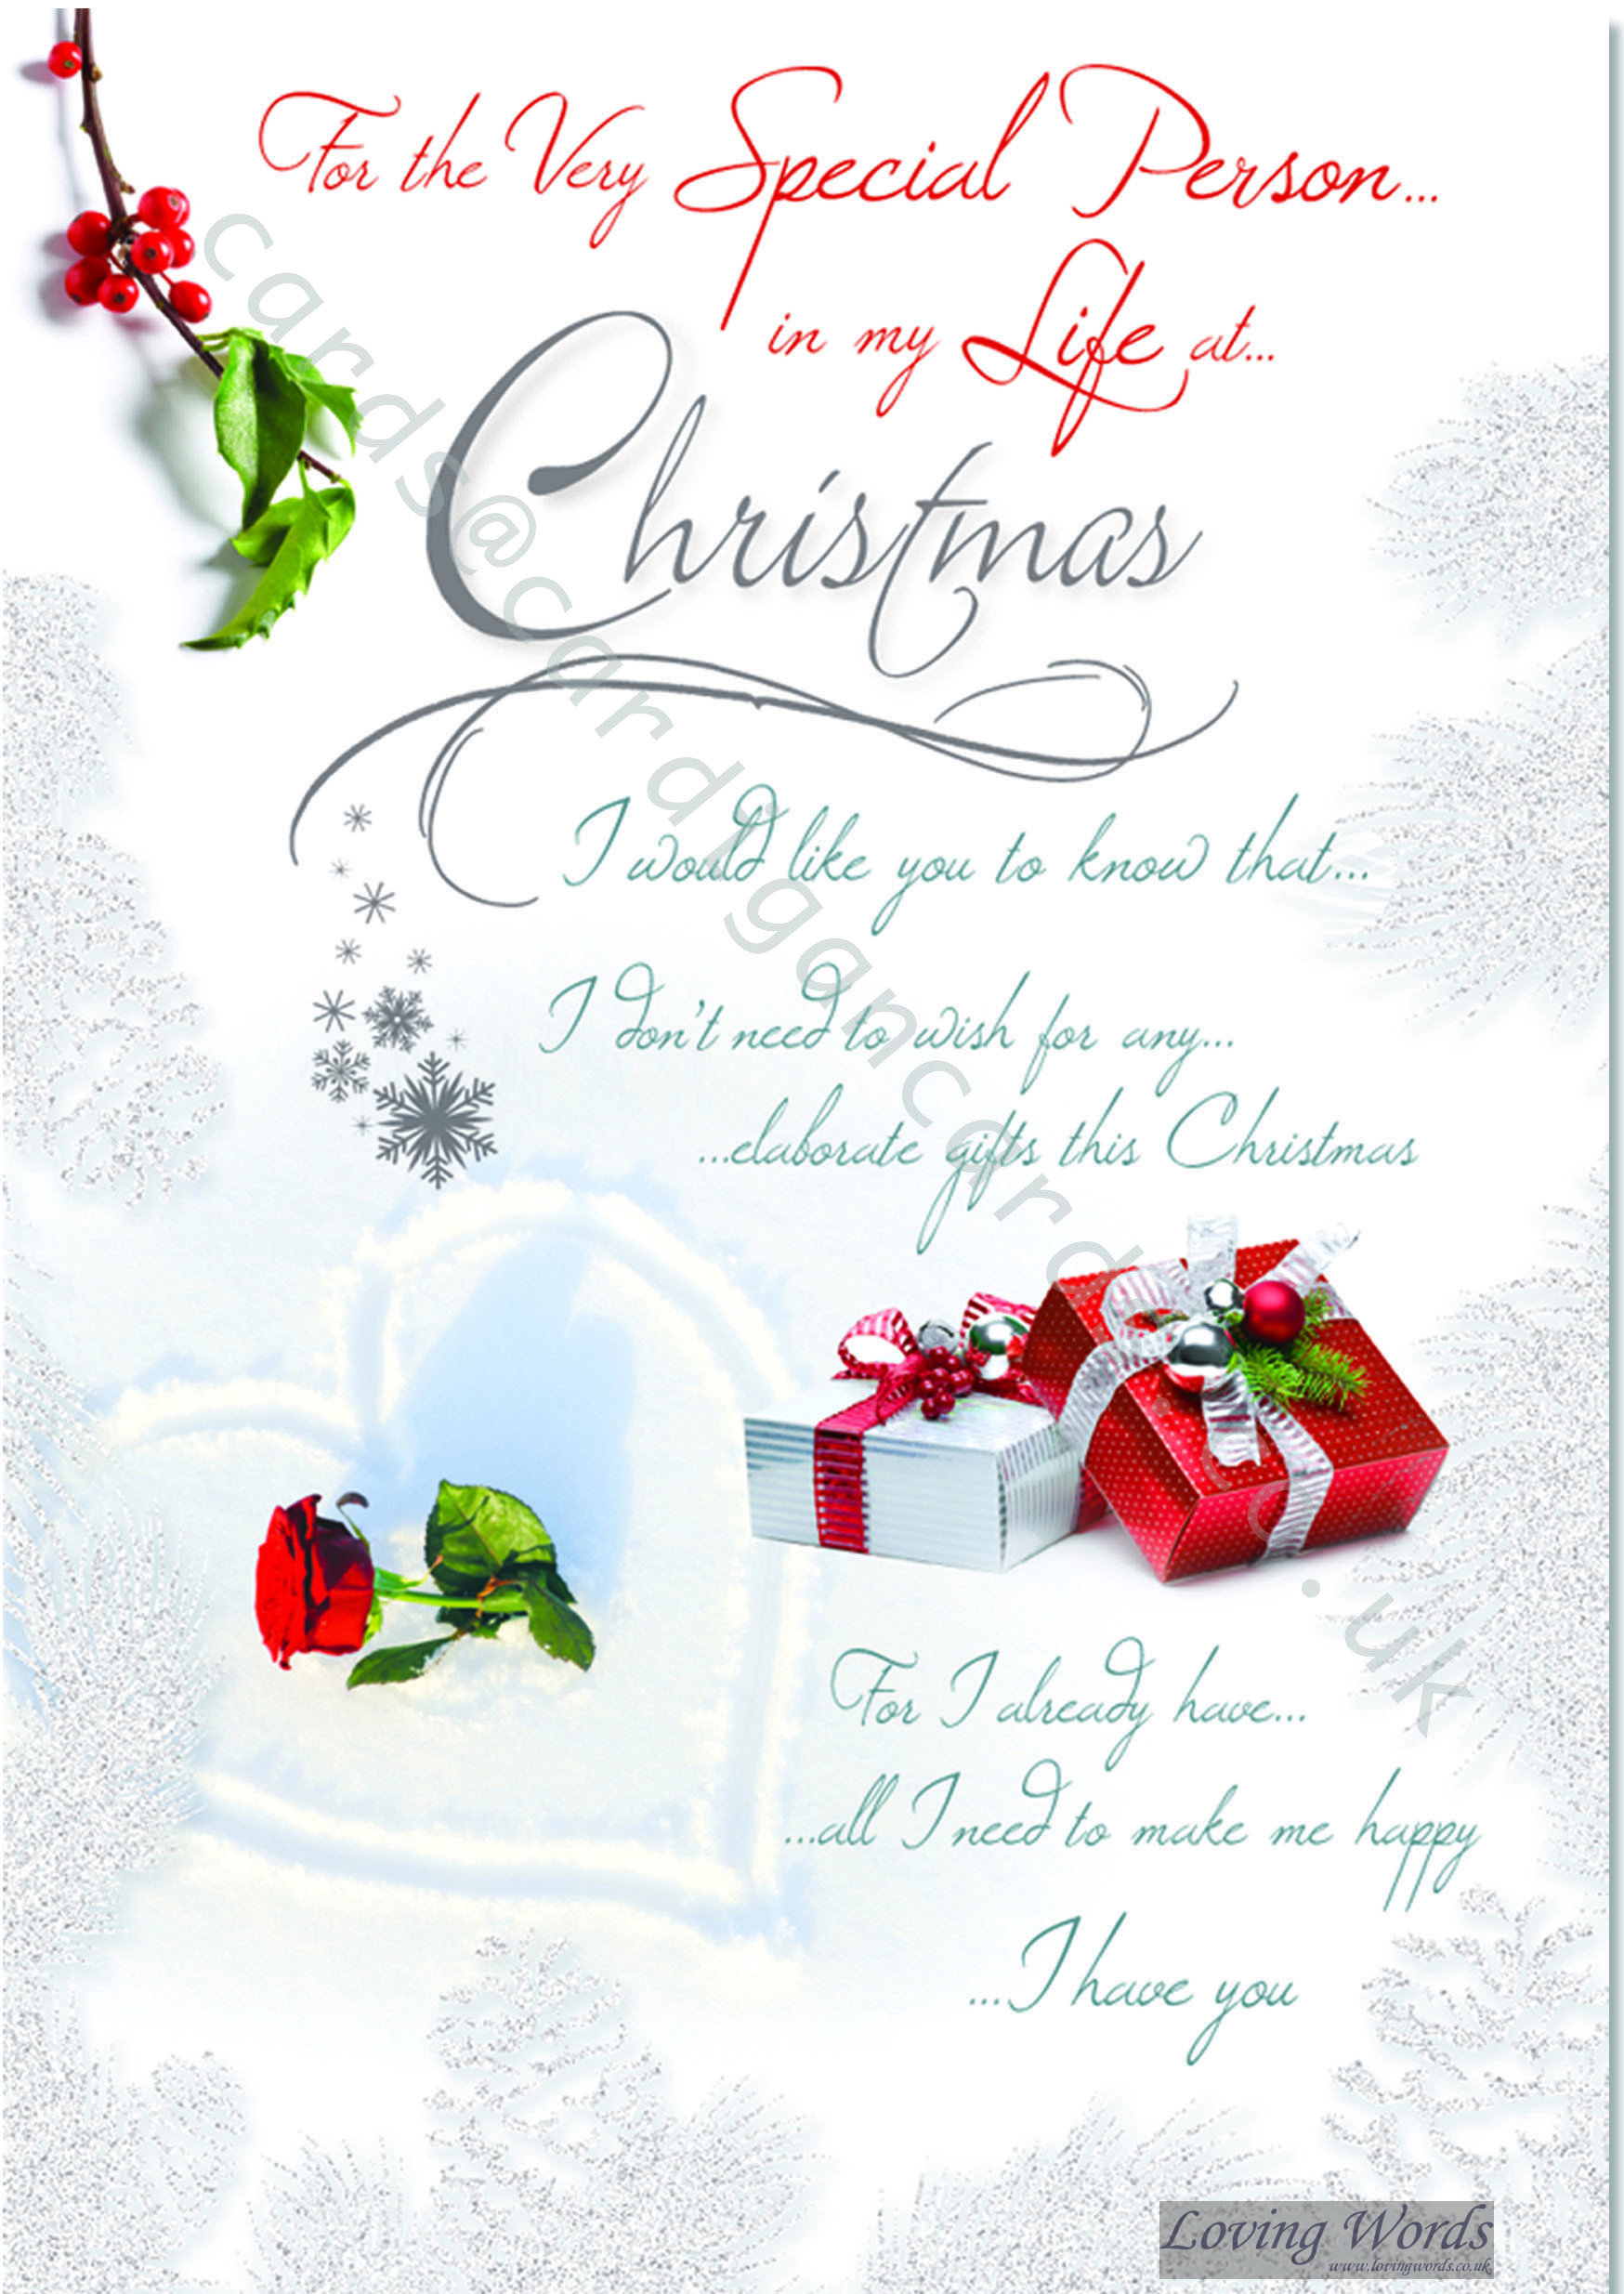 Special Person In My Life At Christmas Greeting Cards By